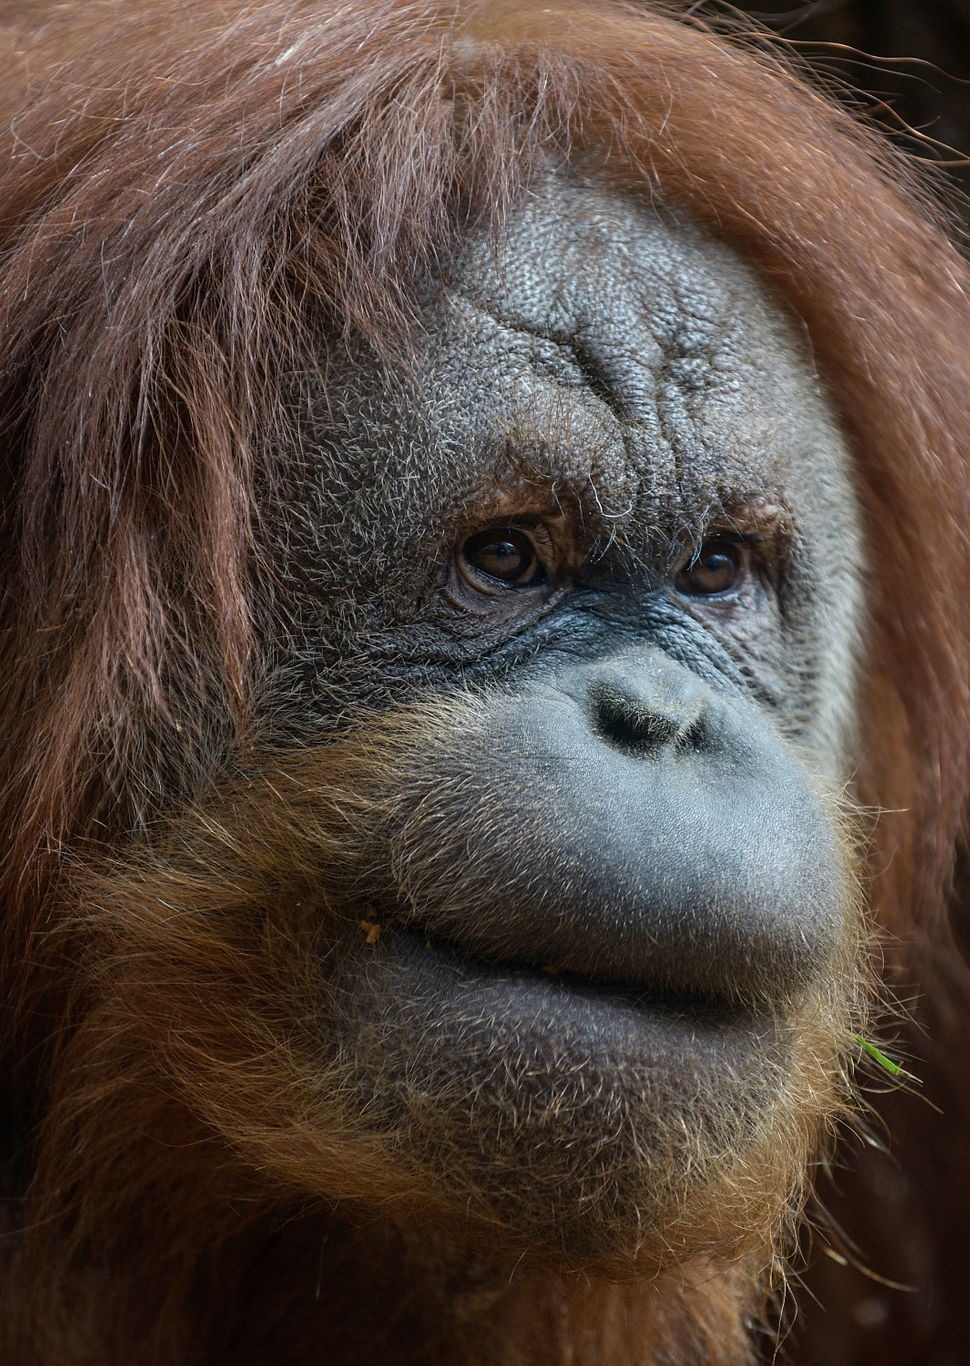 ROME, ITALY - MARCH 28:  An Orangutan stands in the new area dedicated to orangutans at the Bioparco zoo on March 28, 2014 in